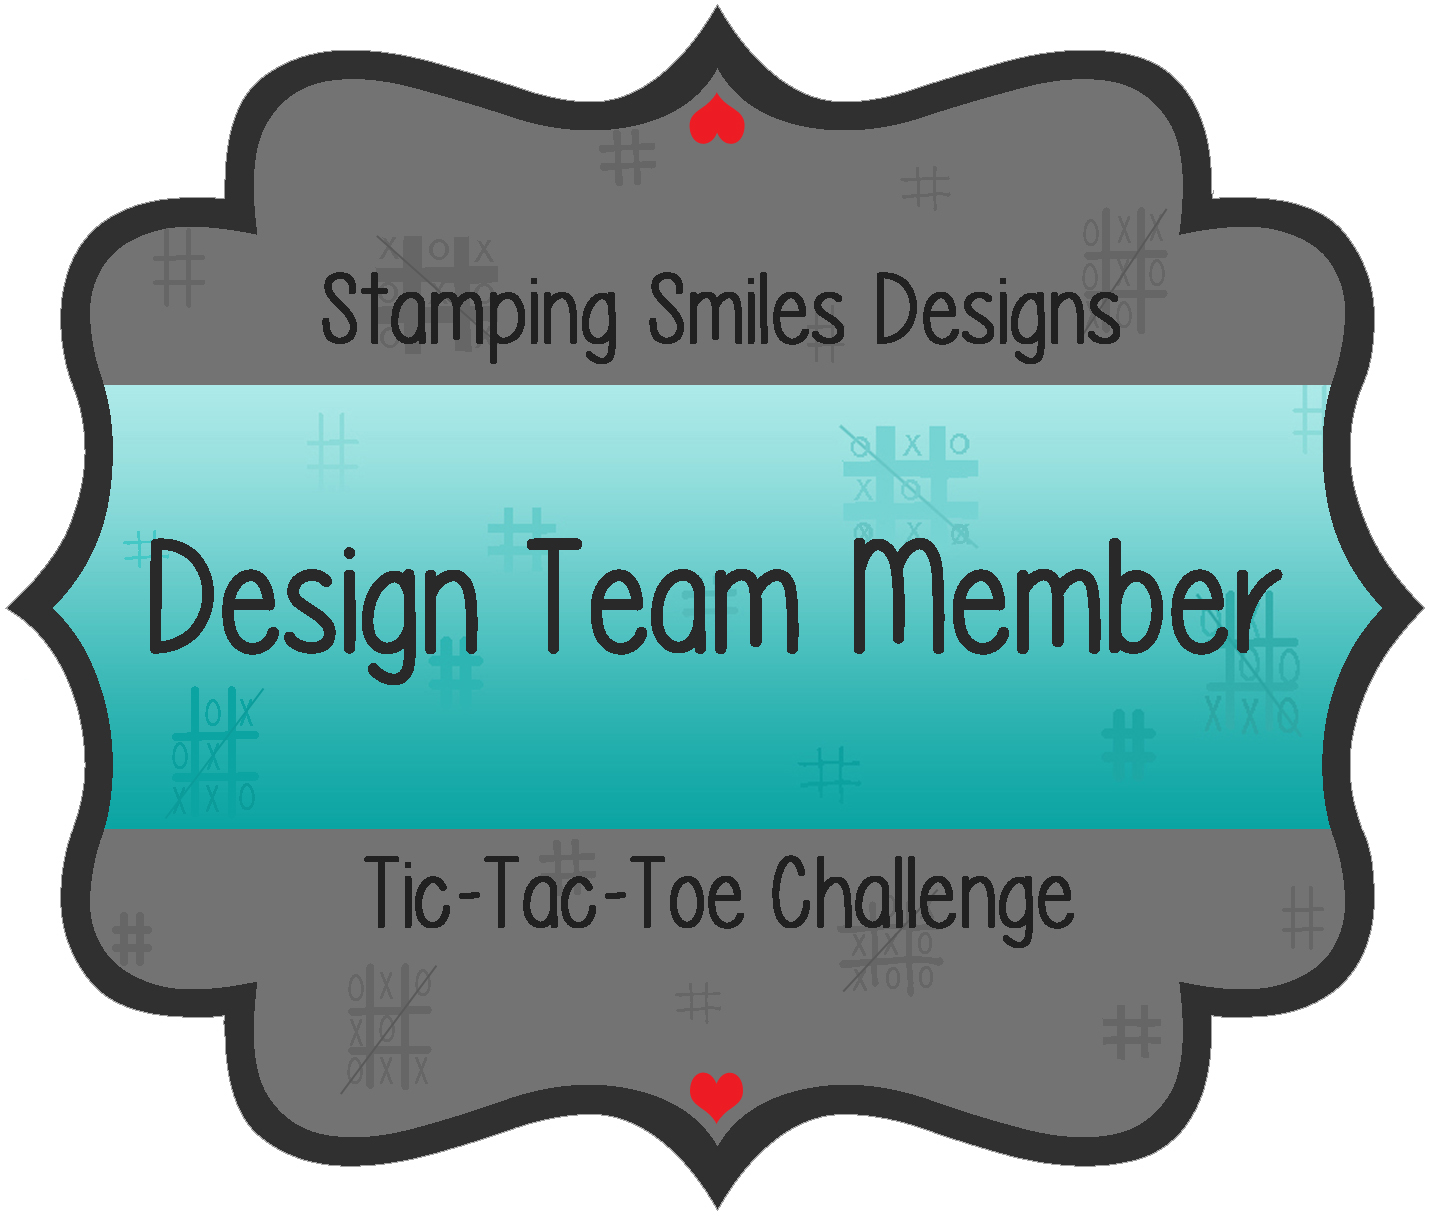 ***Tic-Tac-Toe Challenge Design Team Members***